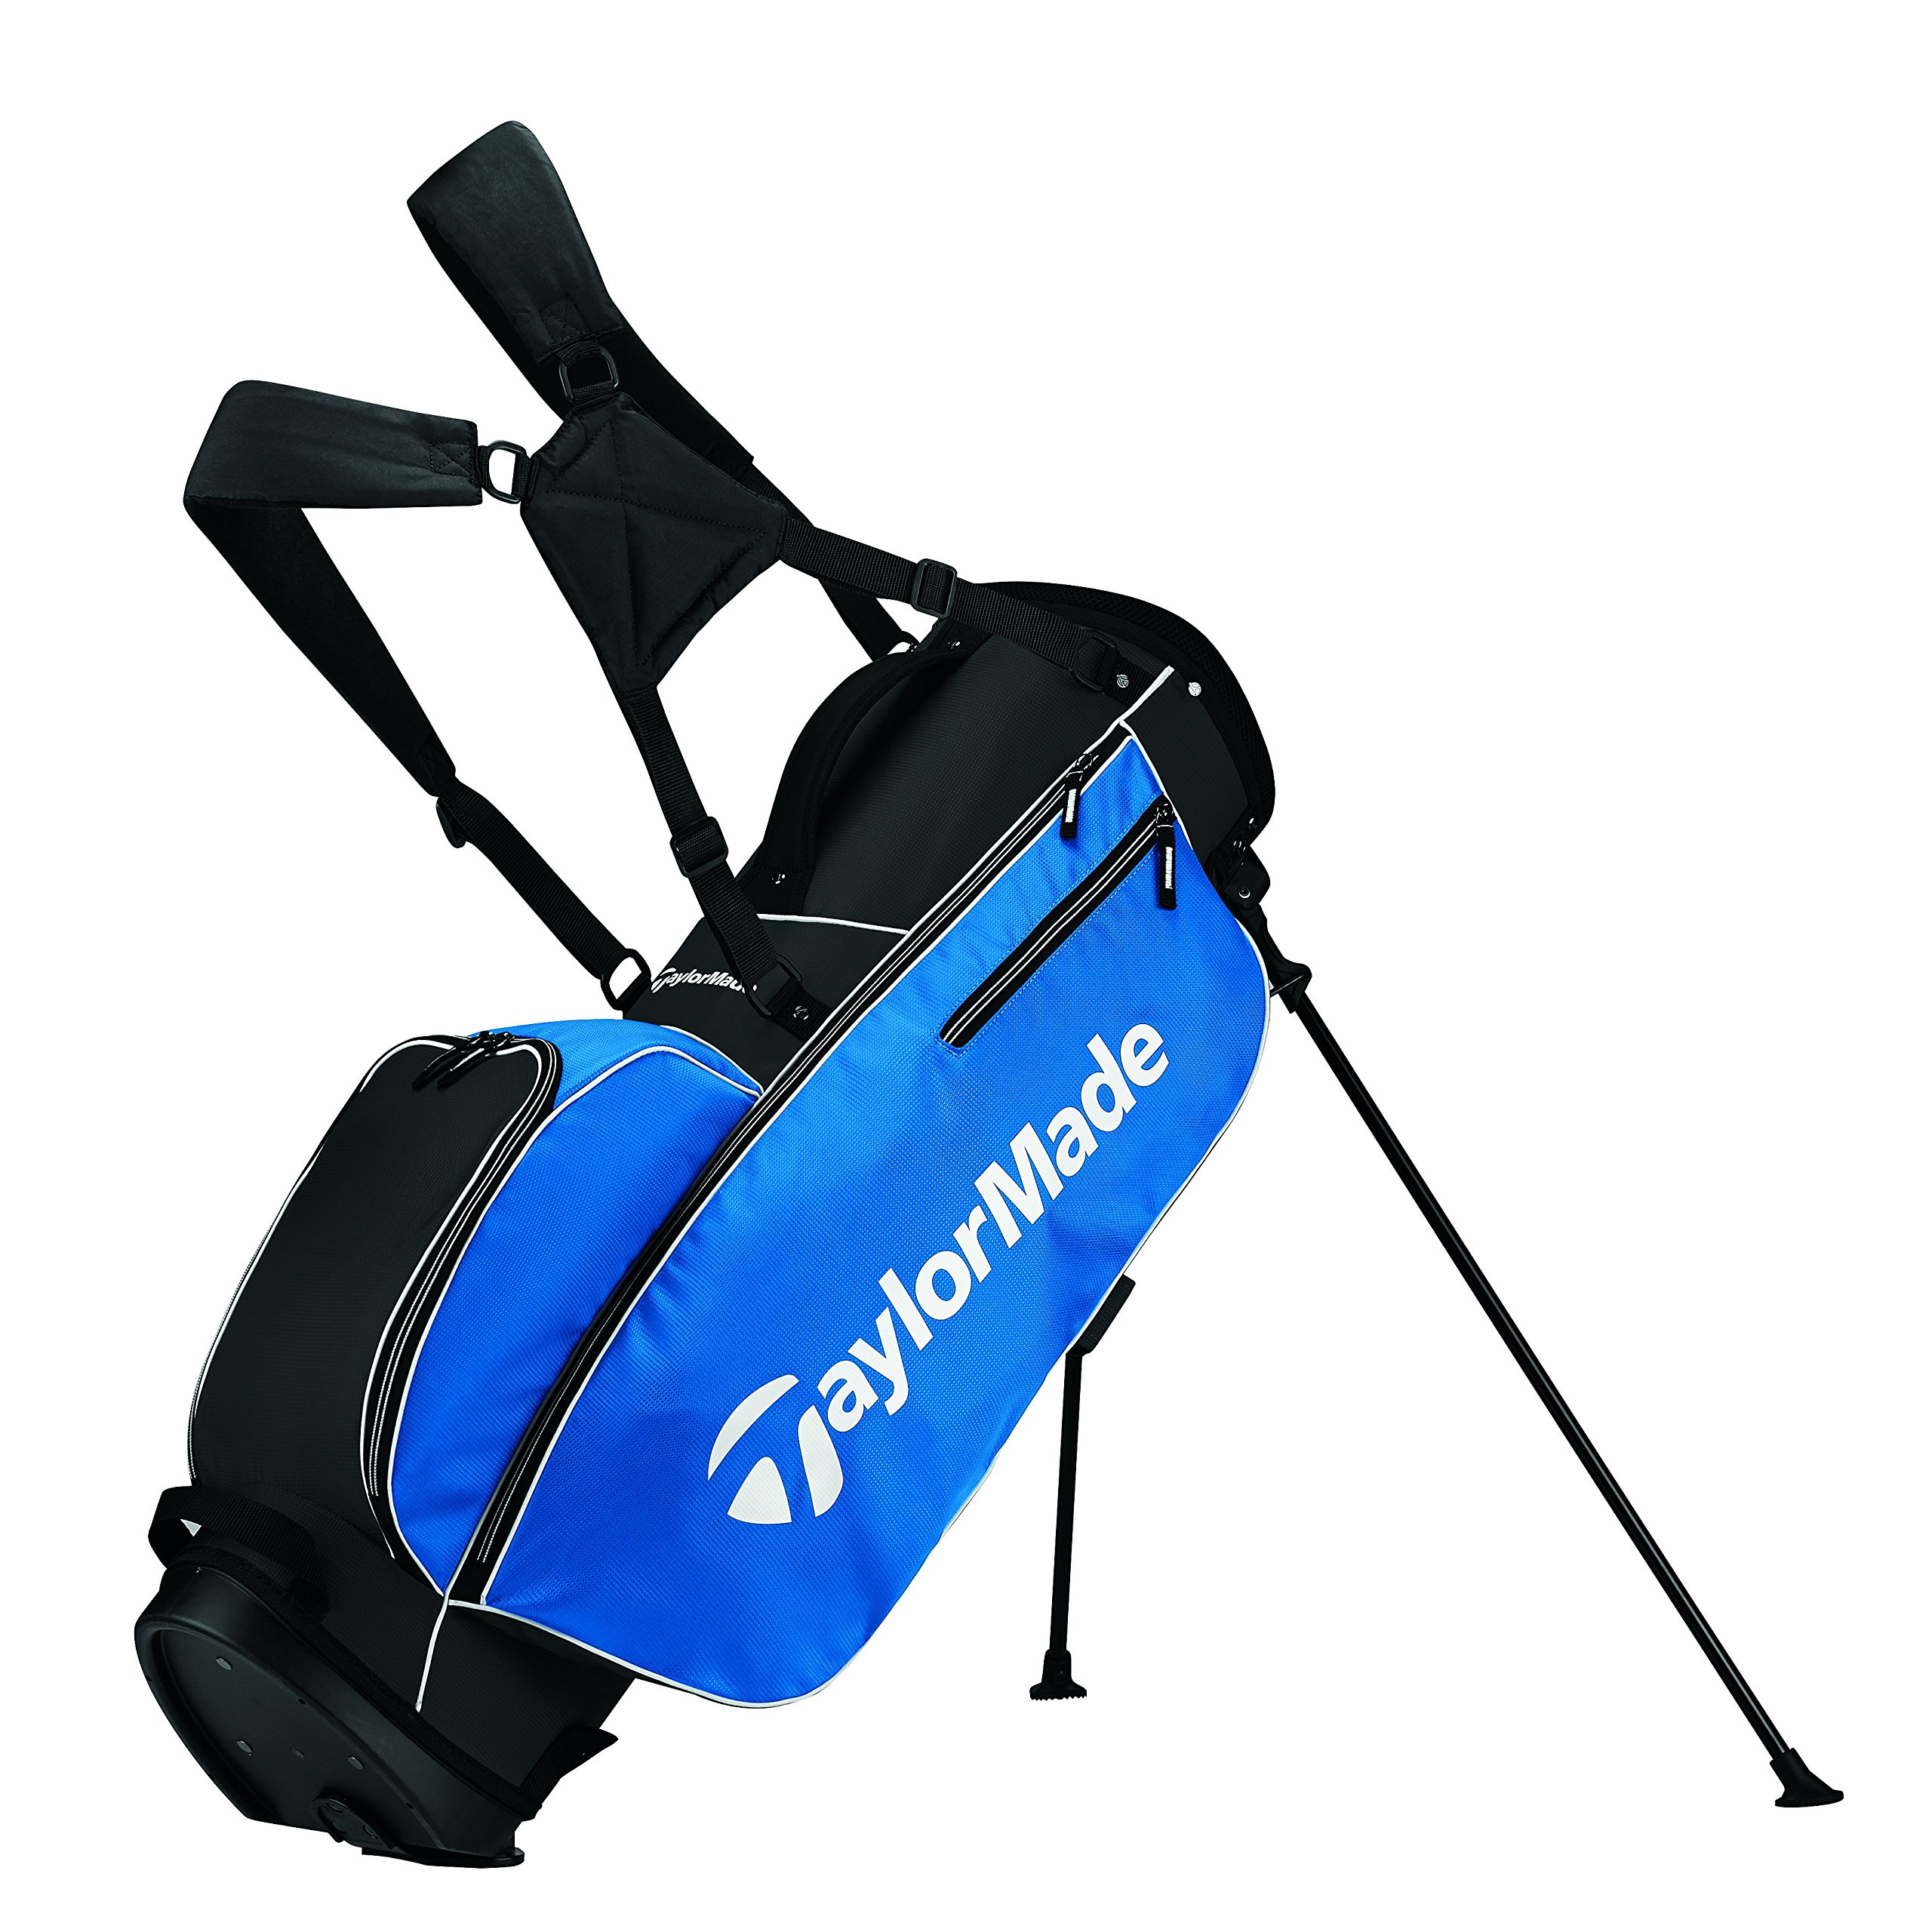 TaylorMade 2017 TM 5.0 Stand Golf Bag, Blue/Black/White by TaylorMade